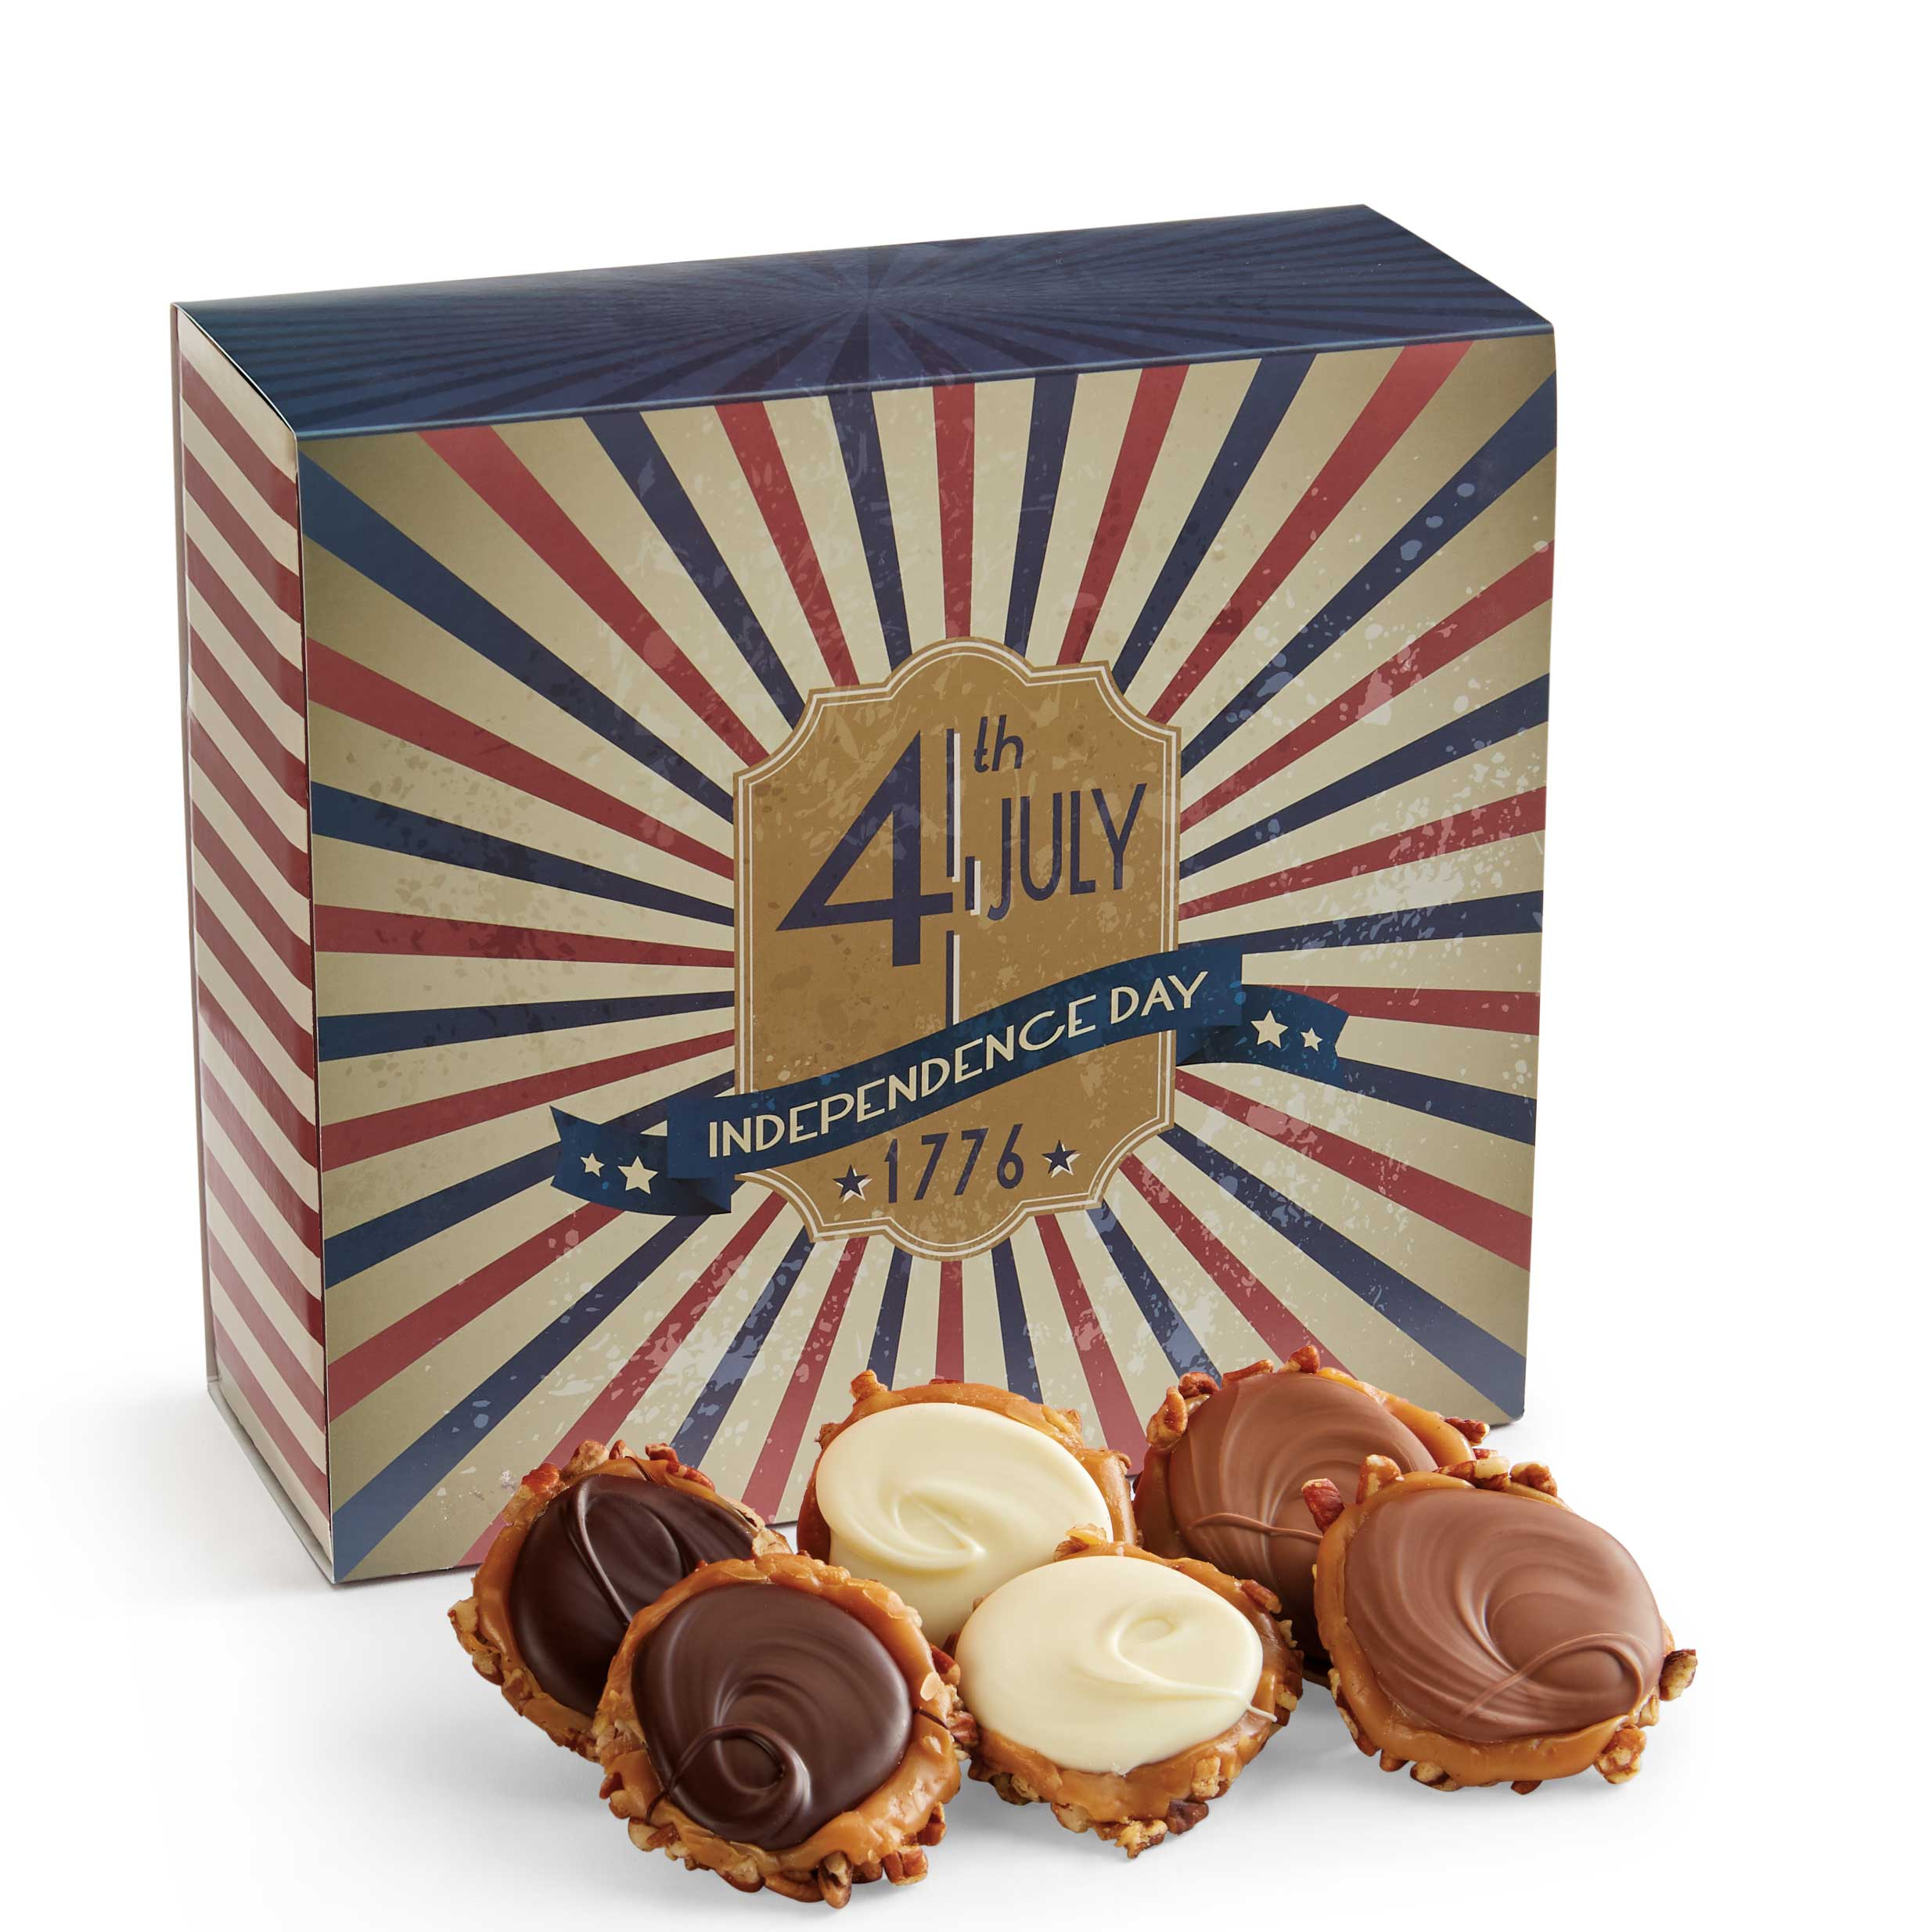 24 Piece Assorted Chocolate Turtle Gophers in the 4th of July Gift Box